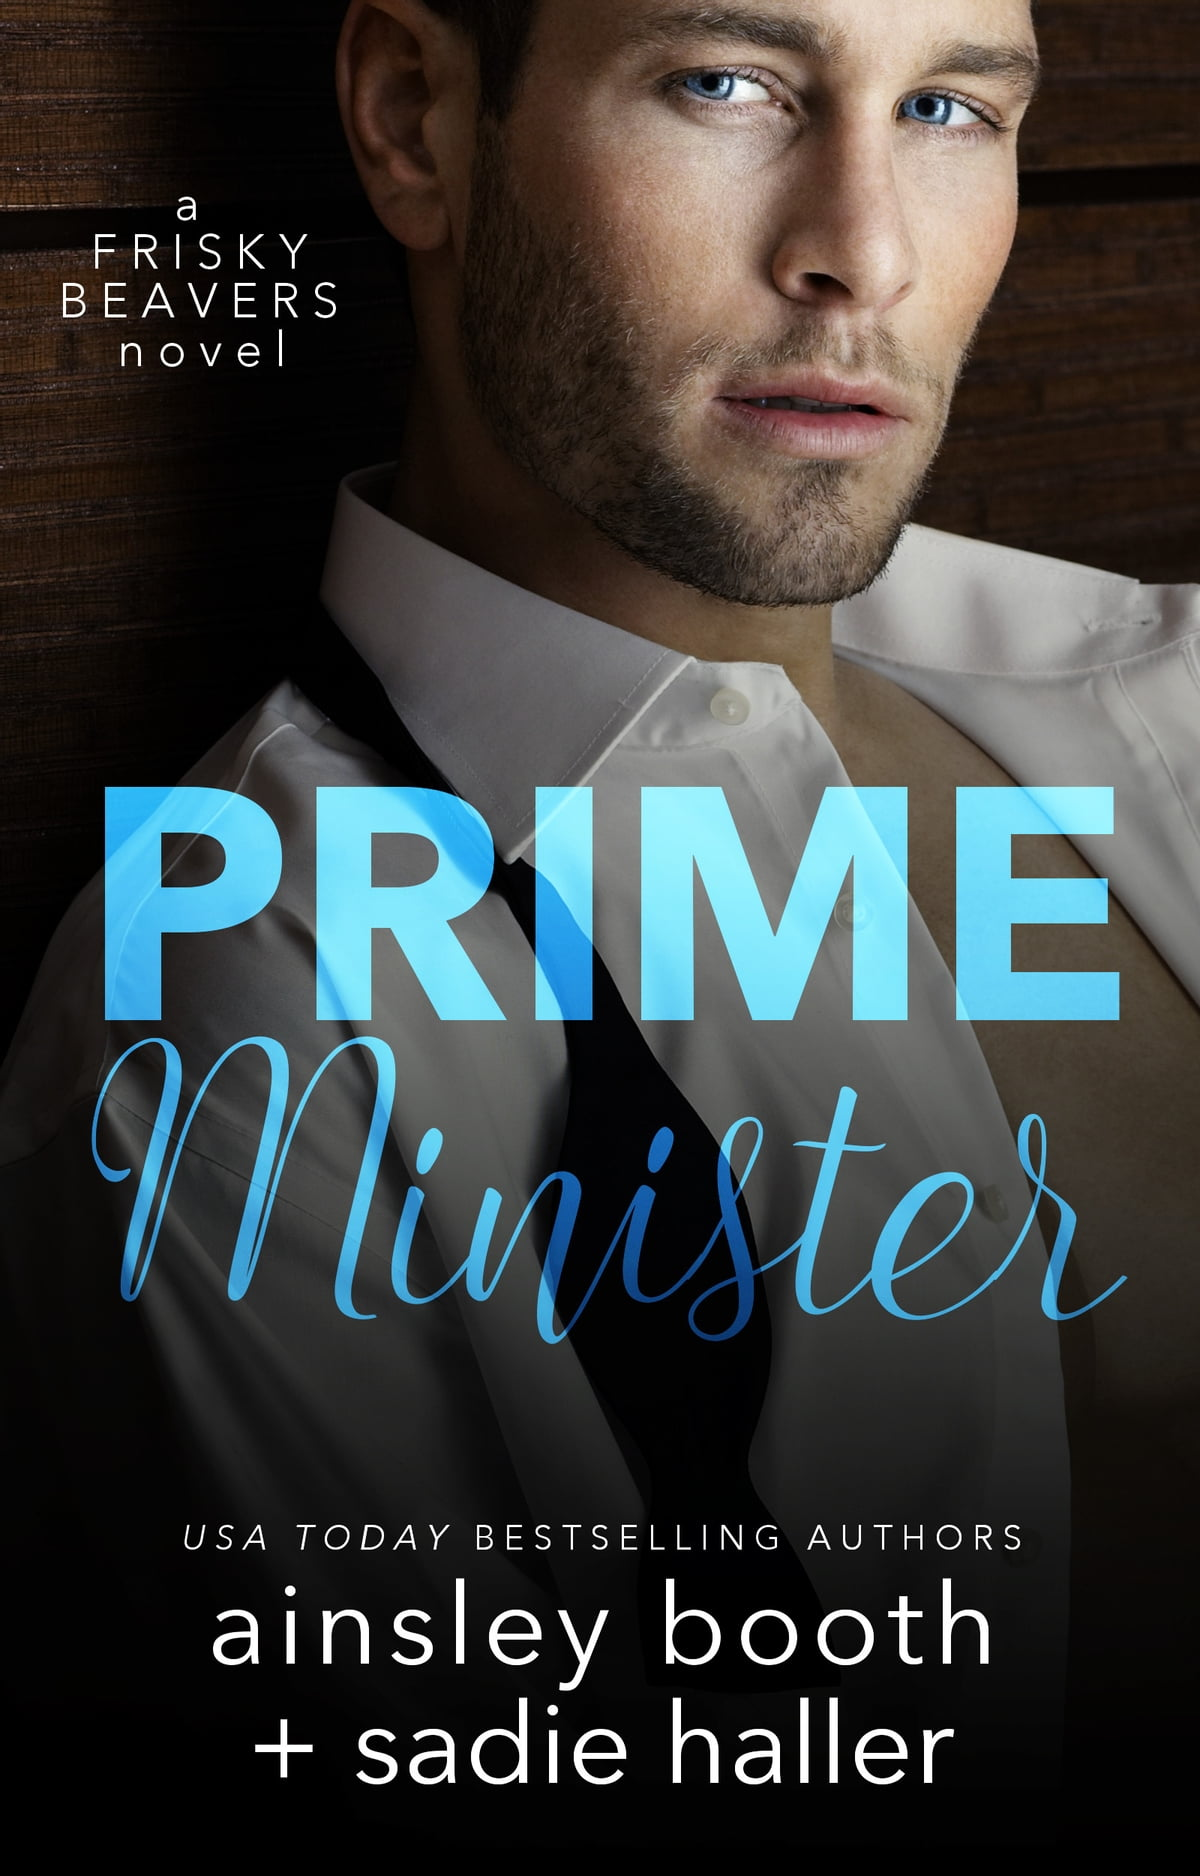 Prime Minister  A Bdsm Erotic Romance Ebook By Ainsley Booth, Sadie Haller